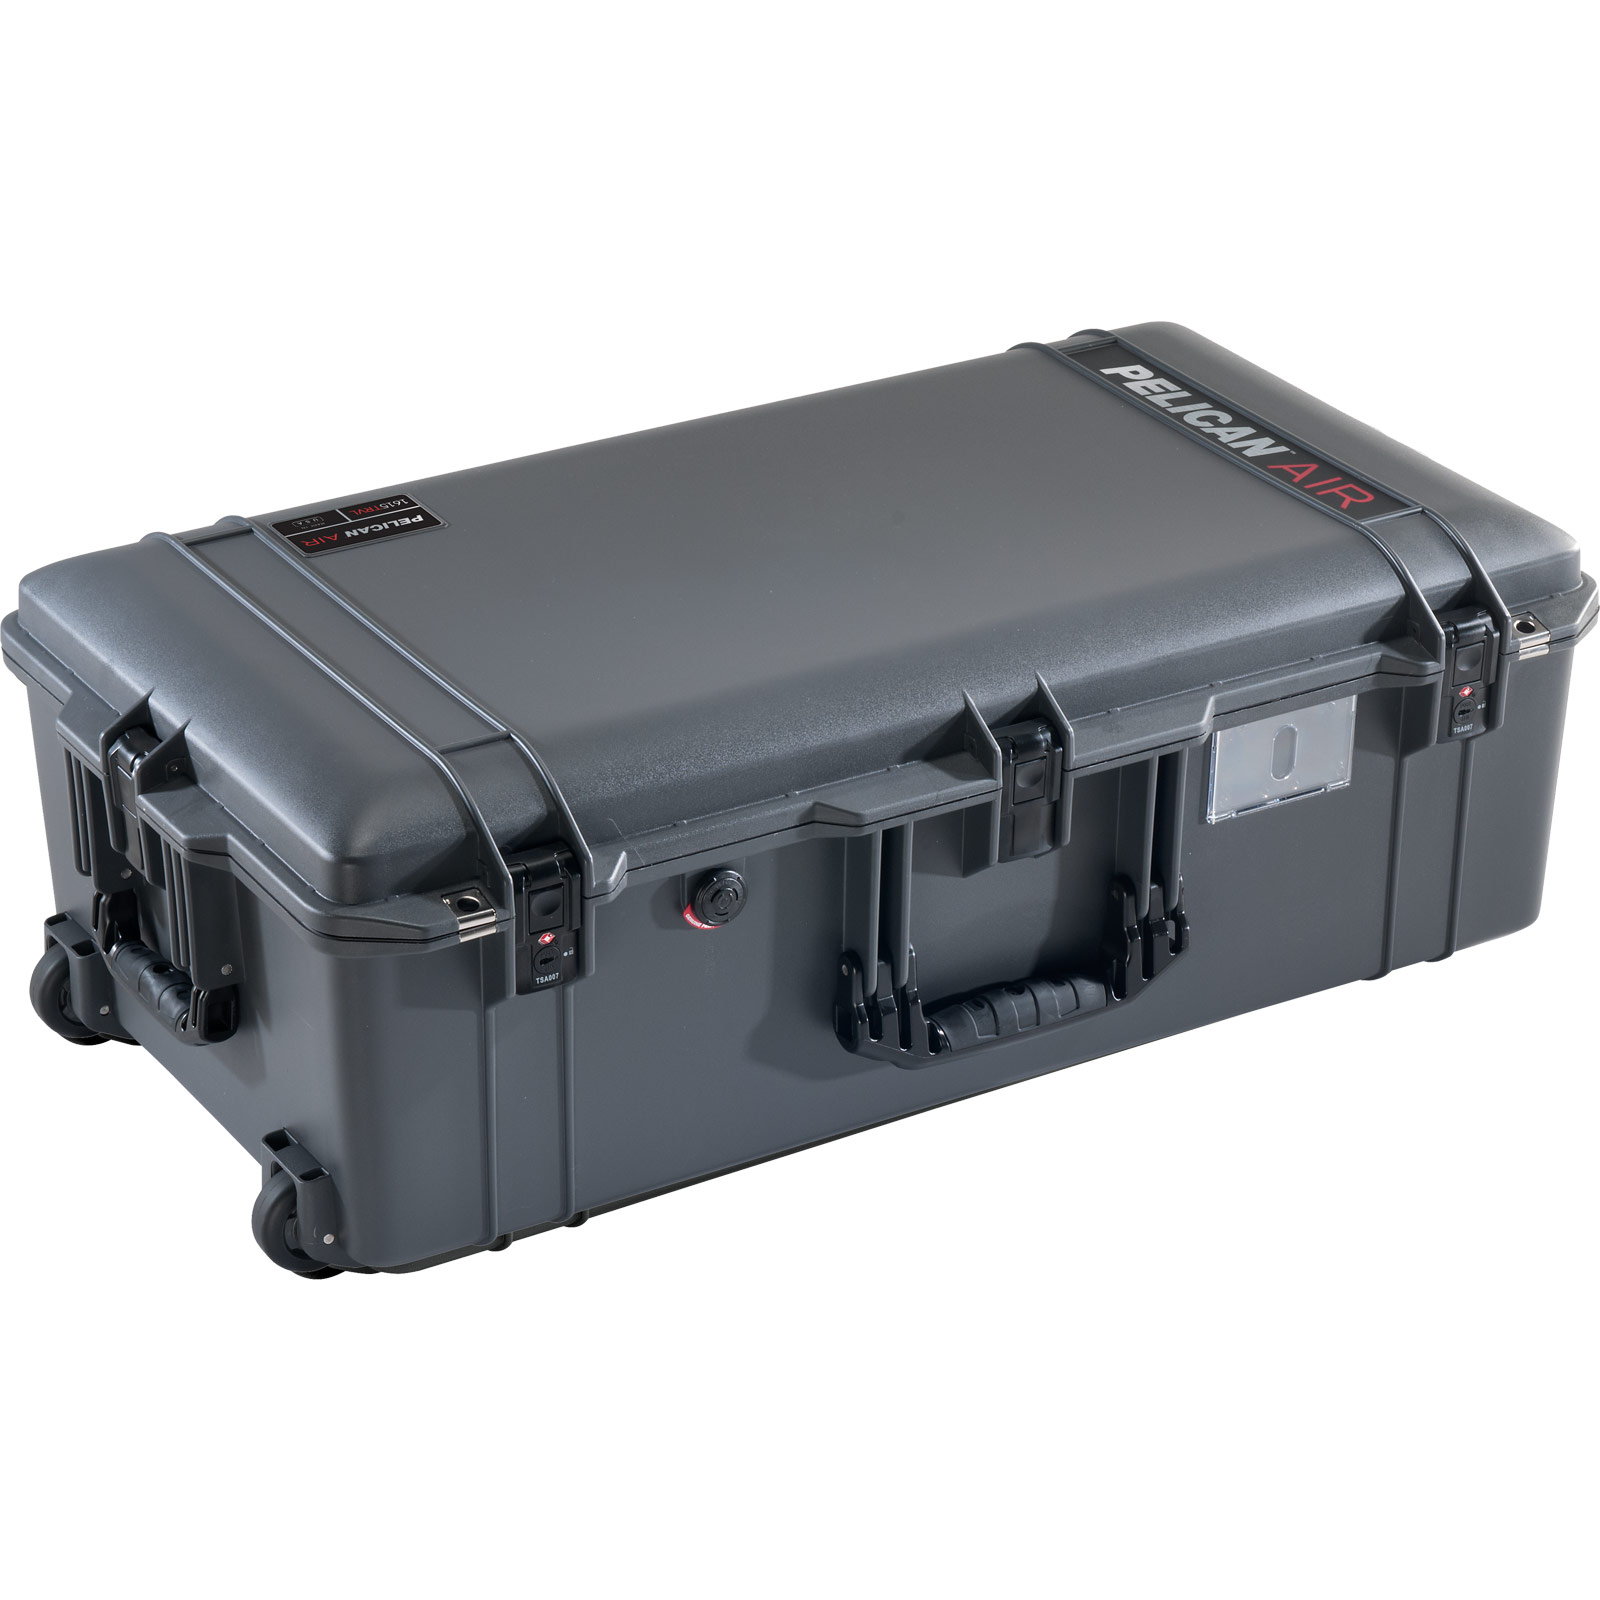 pelican 1615 characoal air travel case